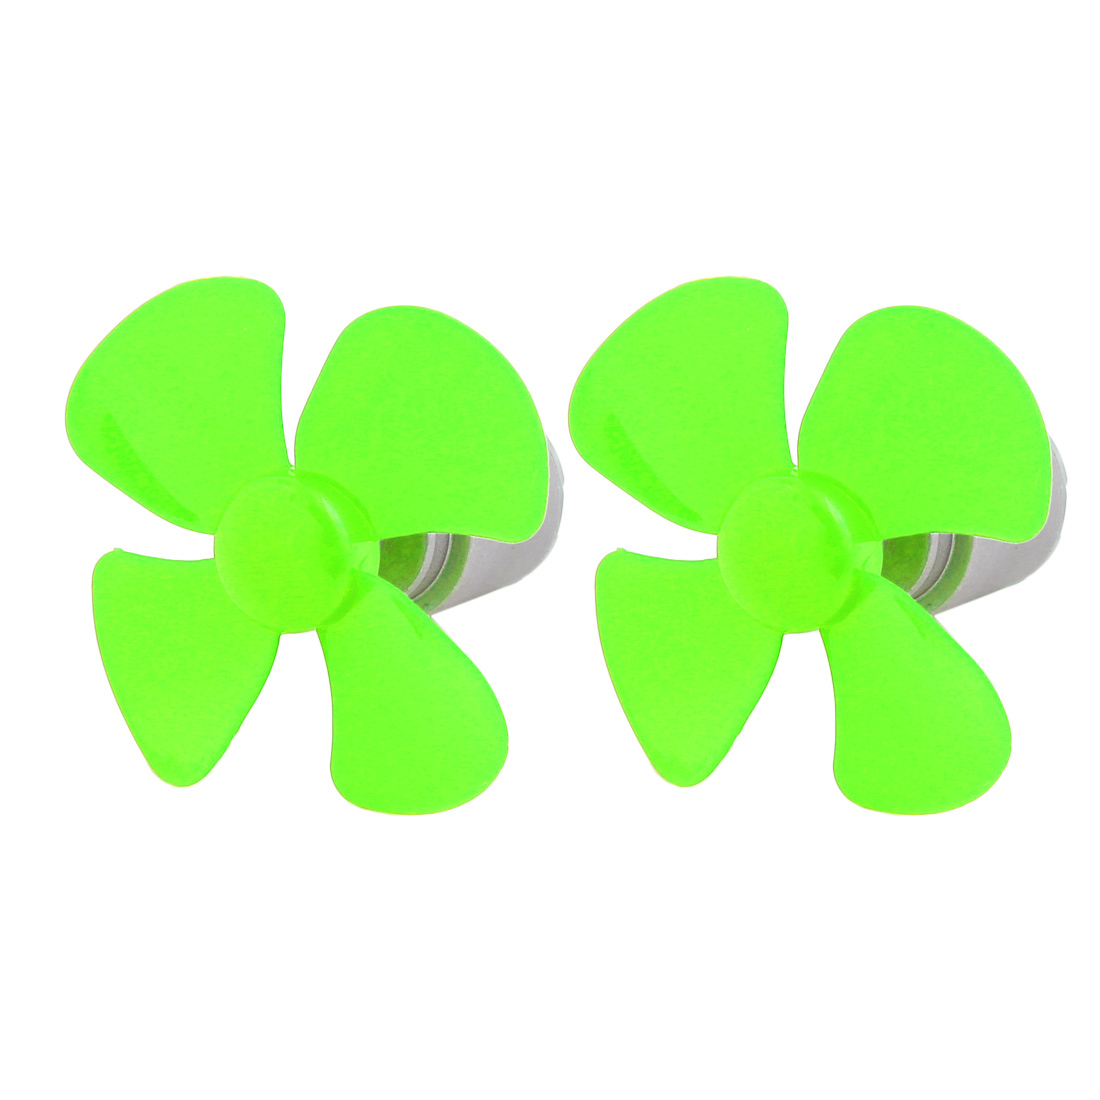 2pcs DC 3V 0.13A 20000RPM Green Strong Force Motor 4 Vanes 56mm Dia Propeller for RC Aircraft